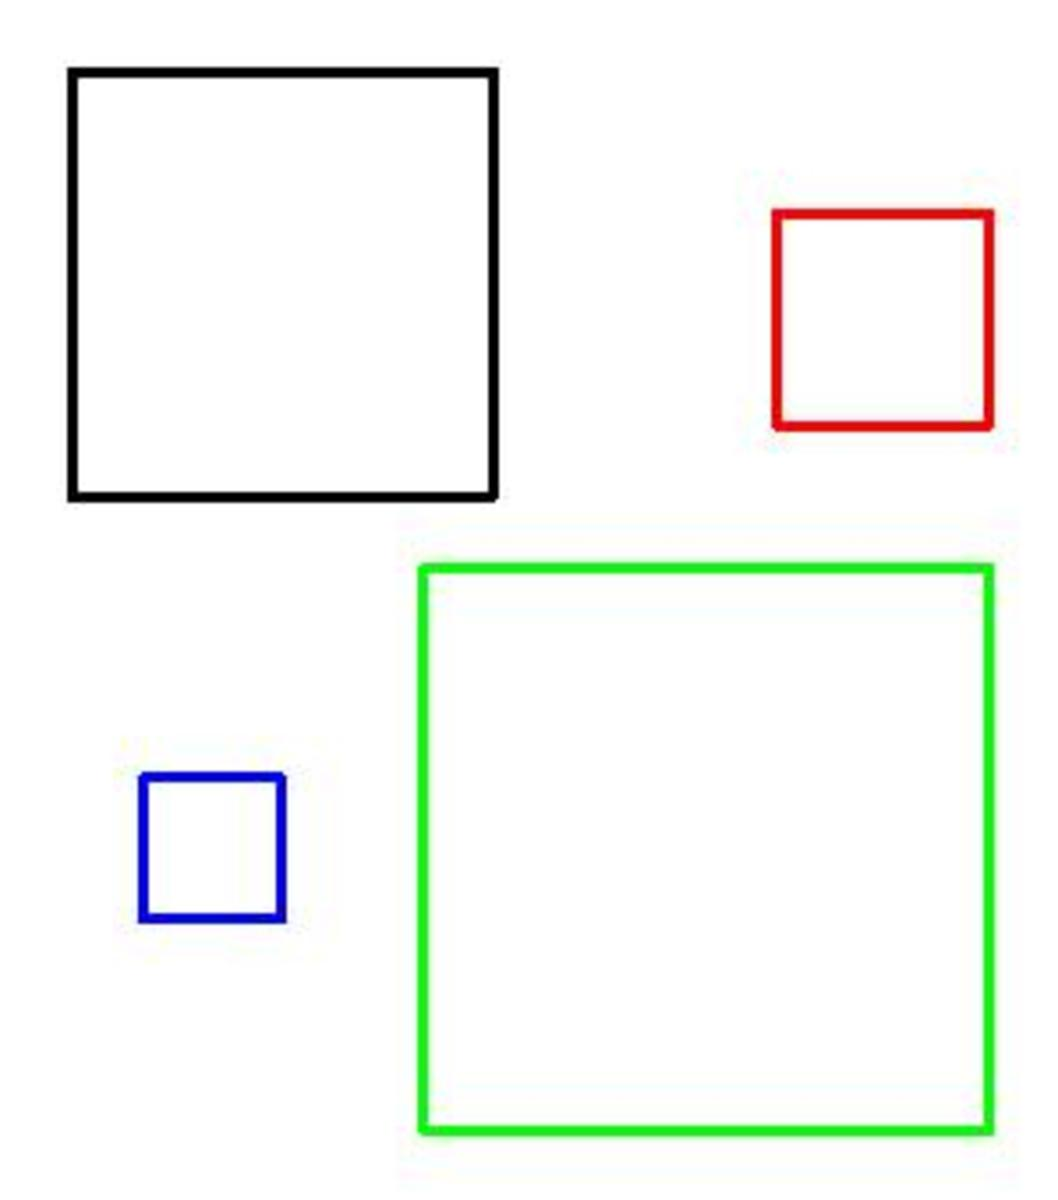 What are the math facts about a square? (mathematical properties of a square)